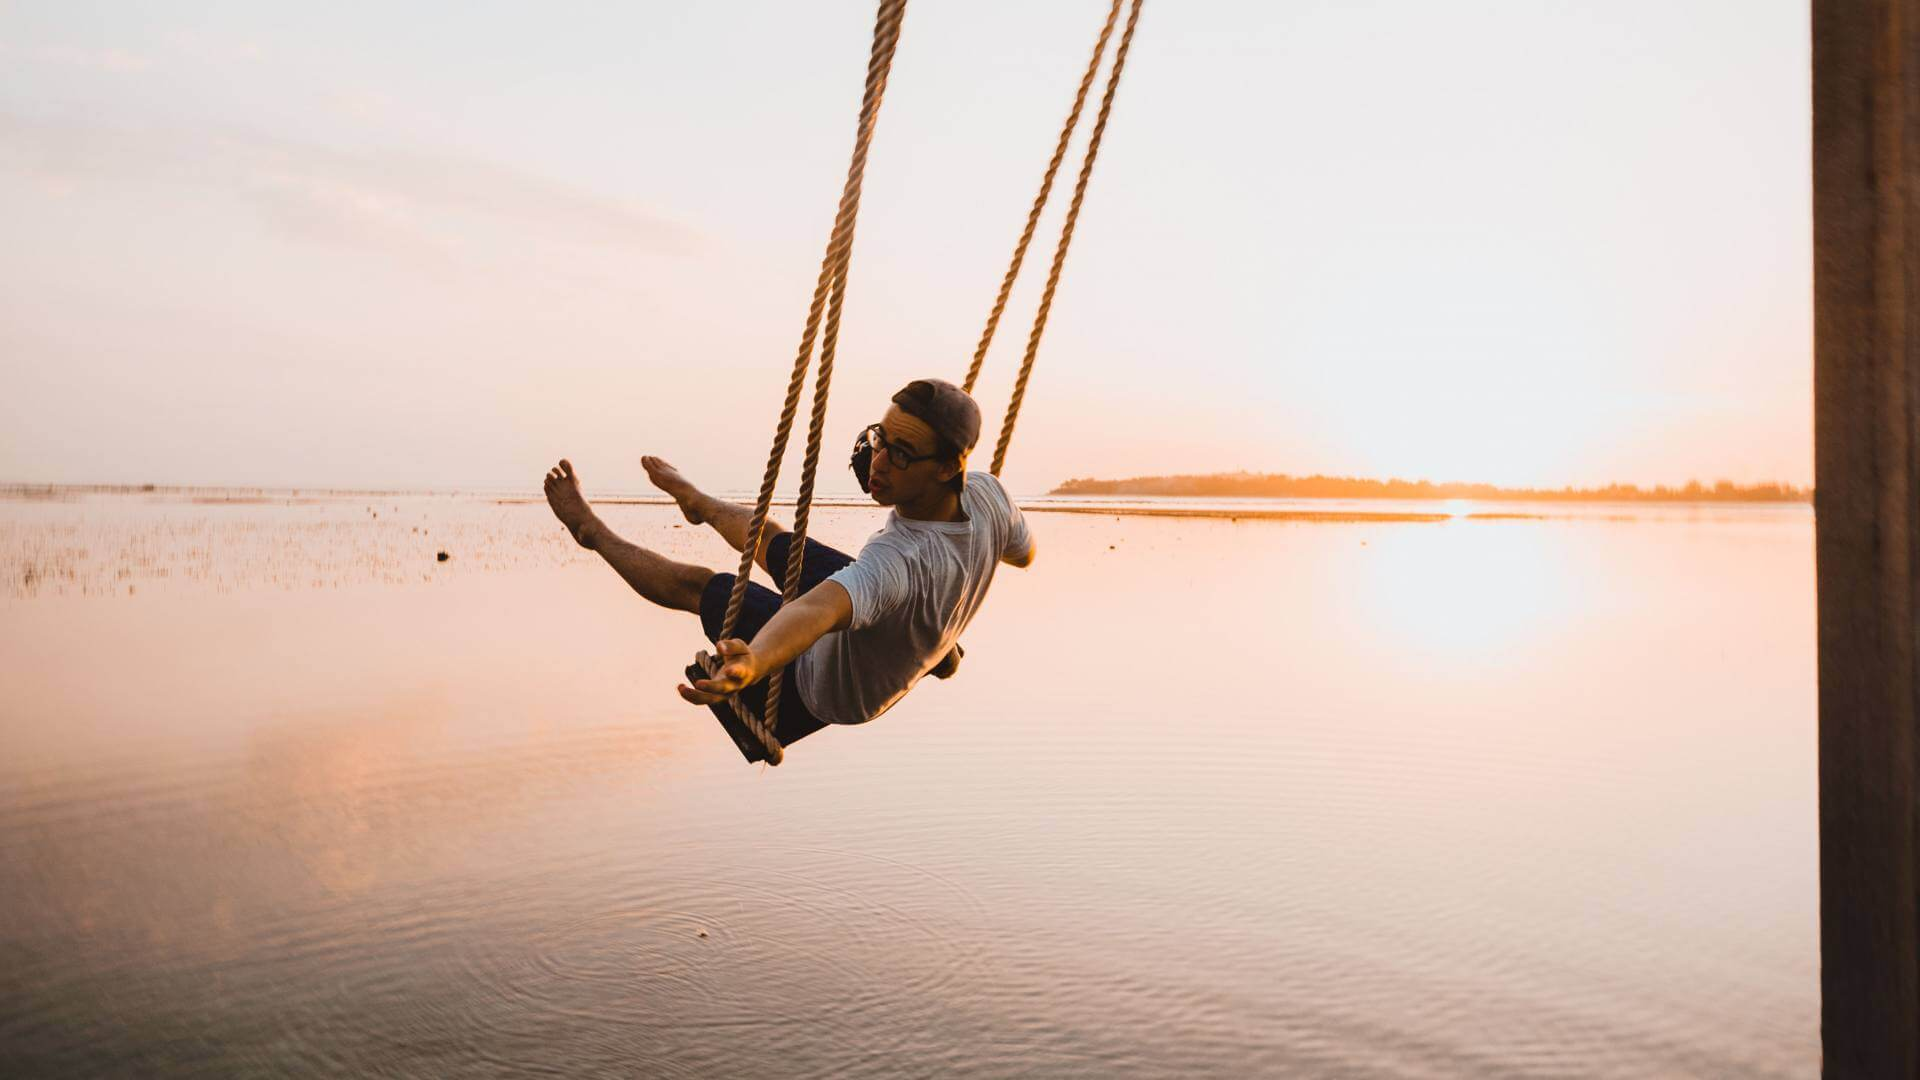 Man is sitting on a swing above water during sunset